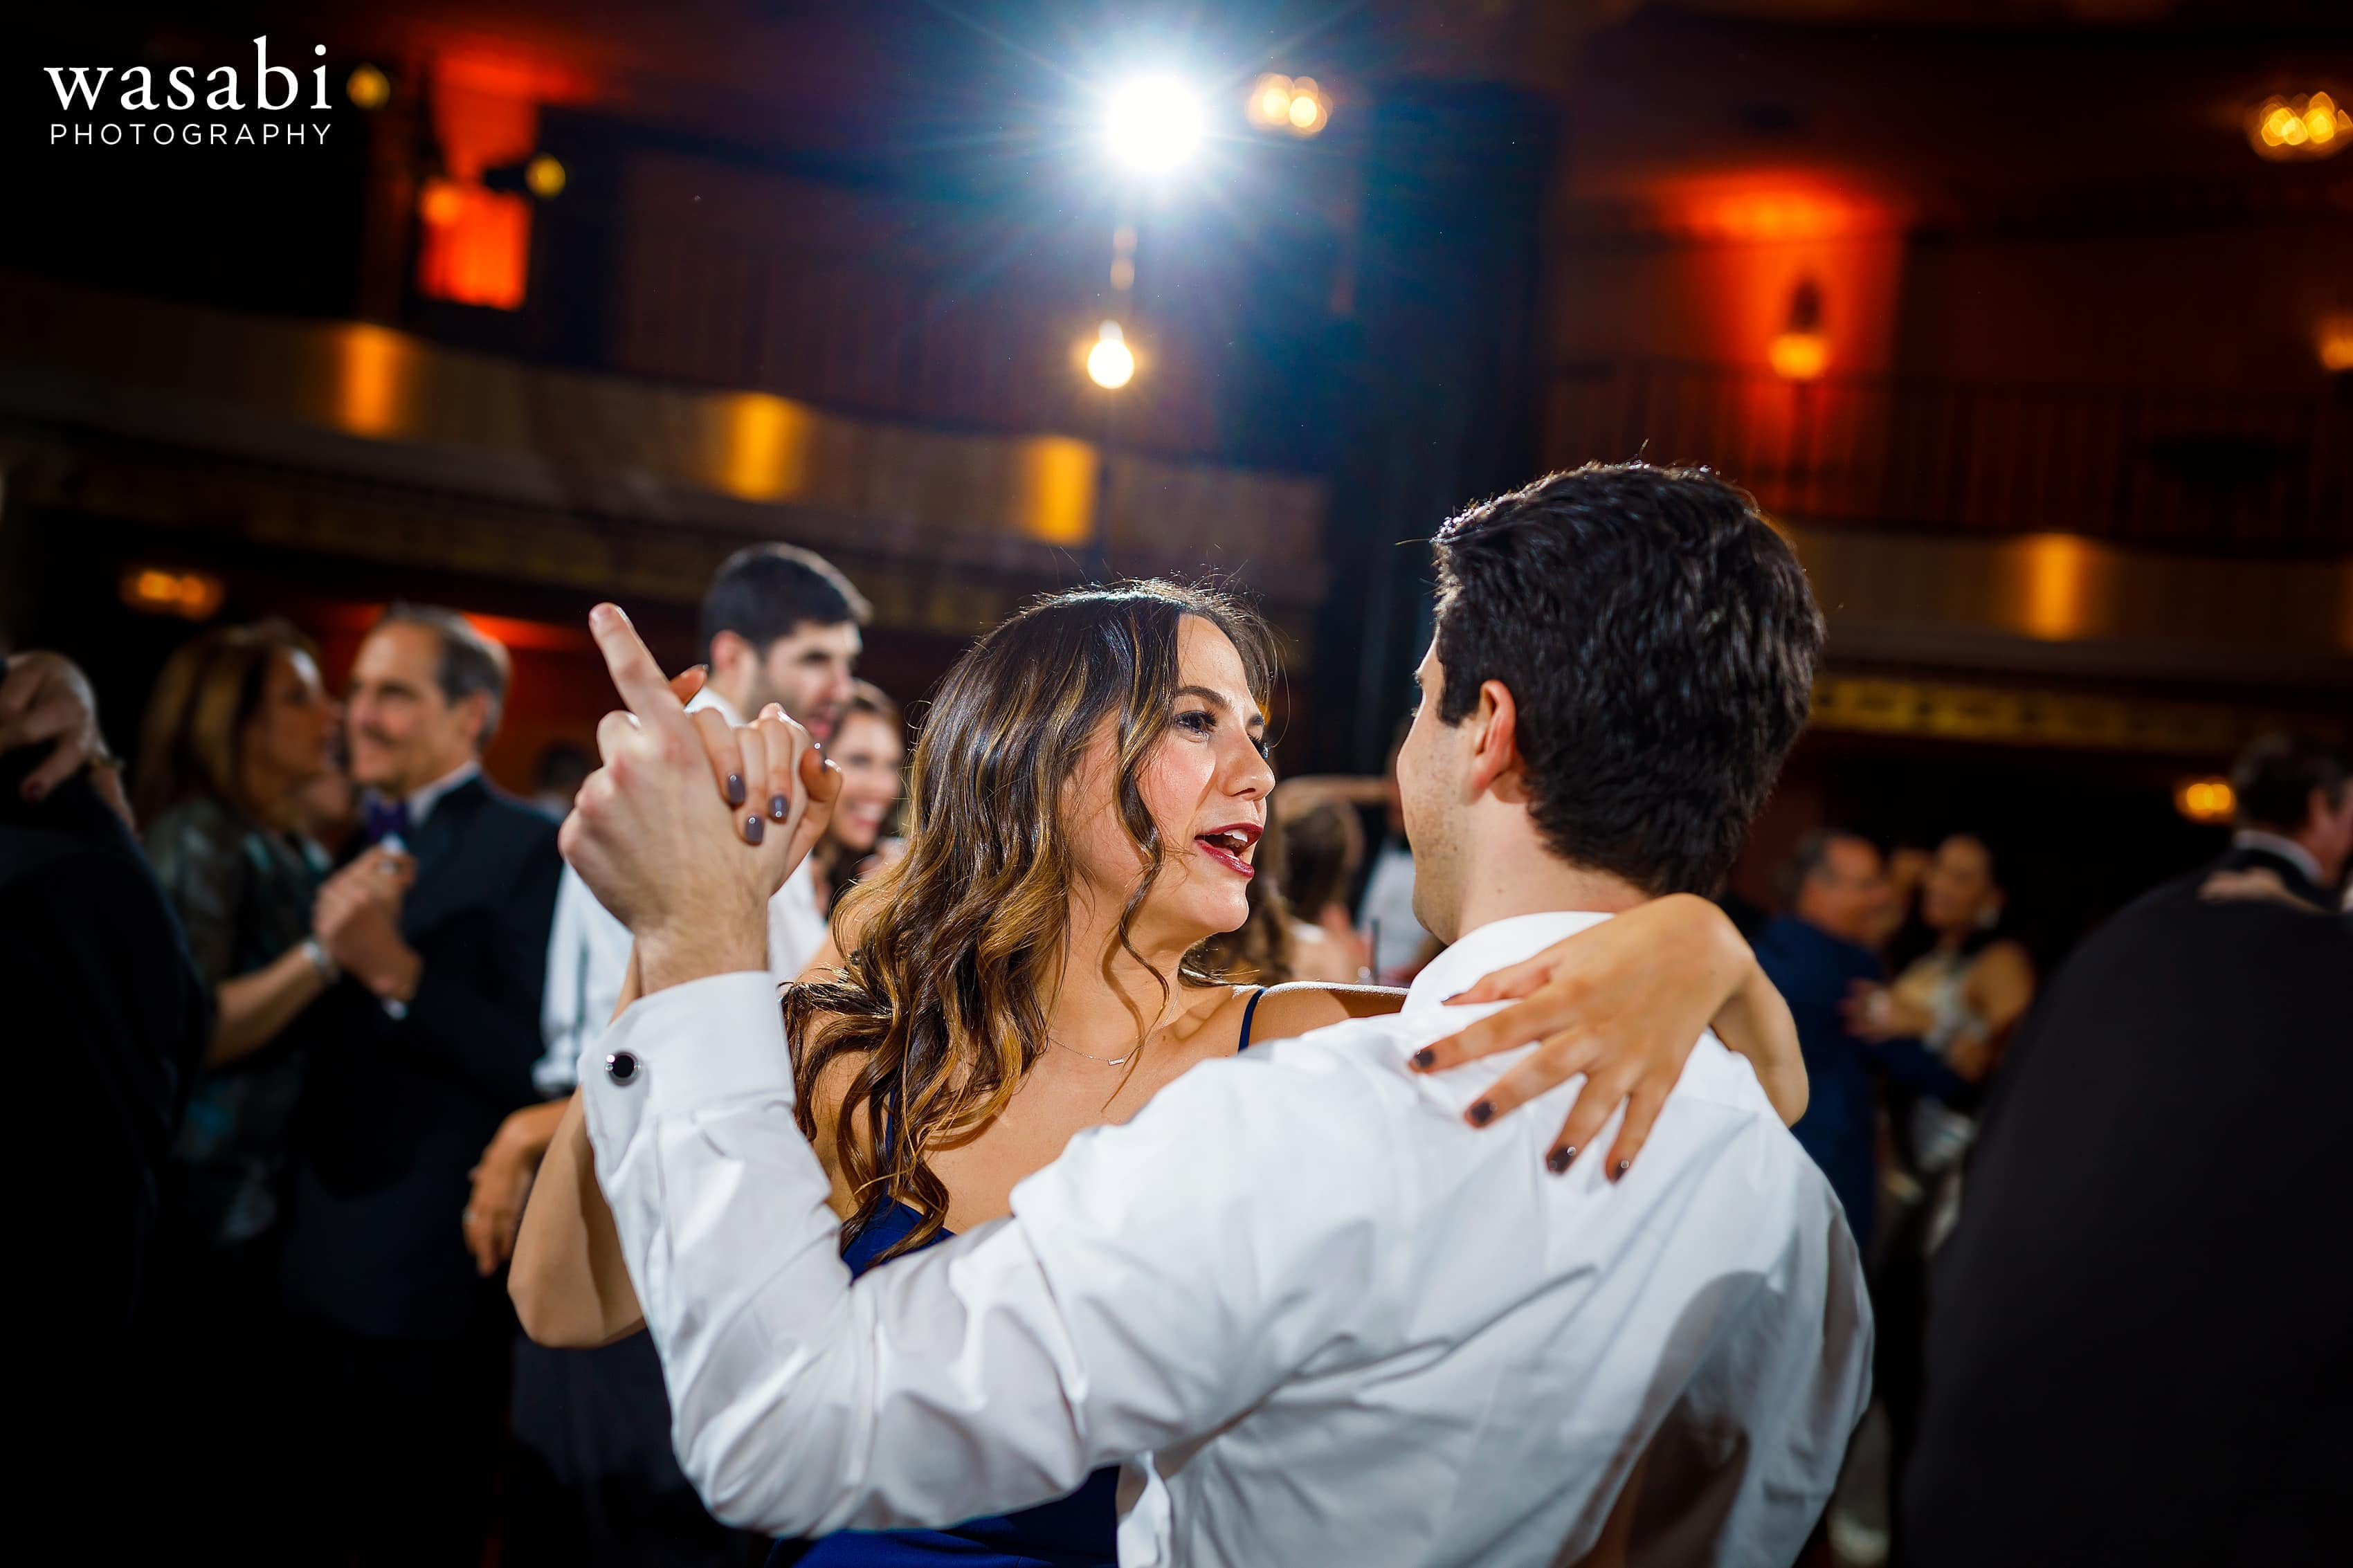 Guests dance during InterContinental Chicago Magnificent Mile Hotel wedding reception